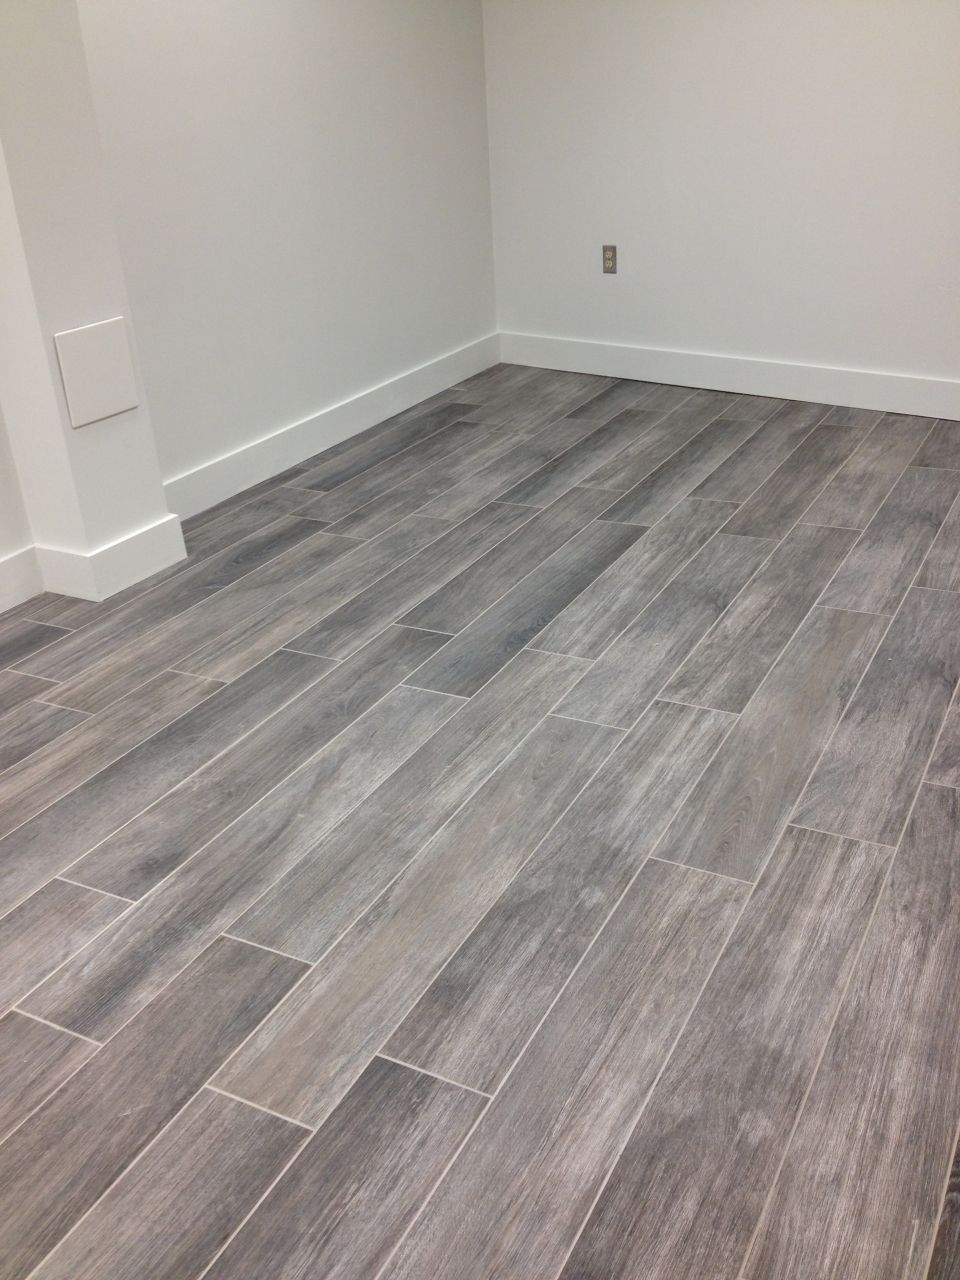 Gray wood tile floor no3lcd6n8 homes pinterest wood for Grey bathroom laminate flooring